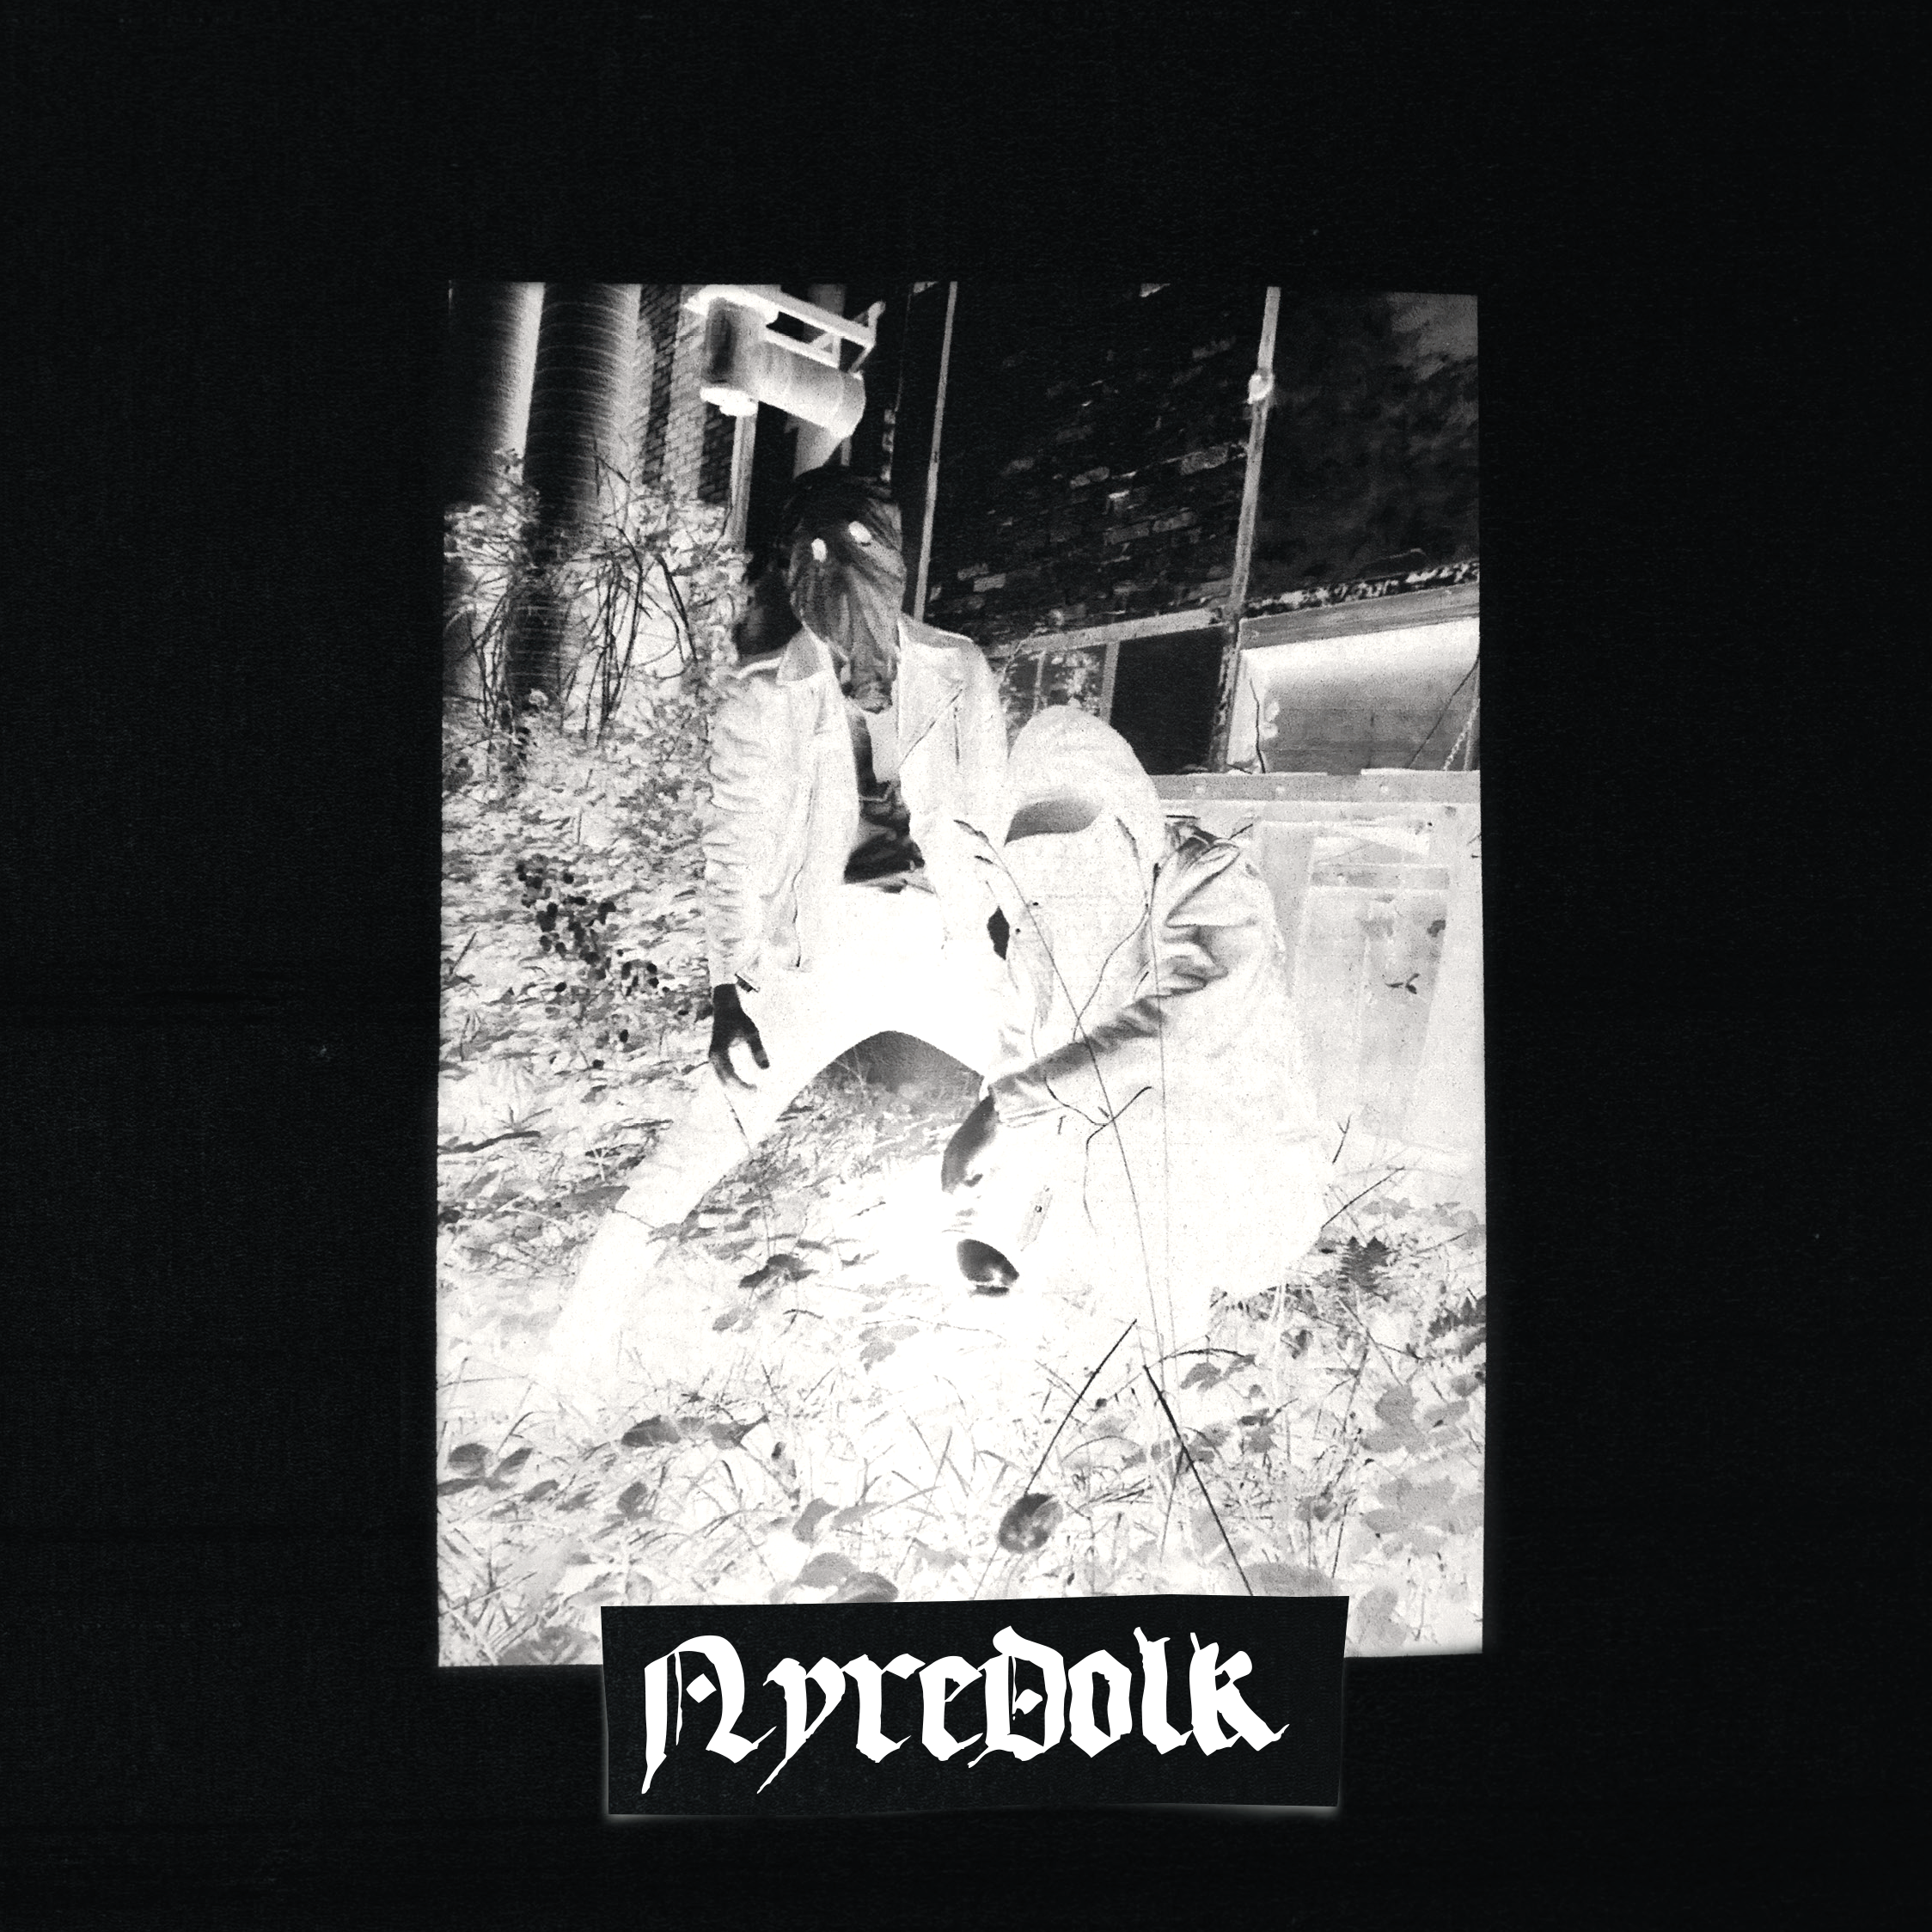 NyreDolk - s/t EP INVEЯTED - Preorder